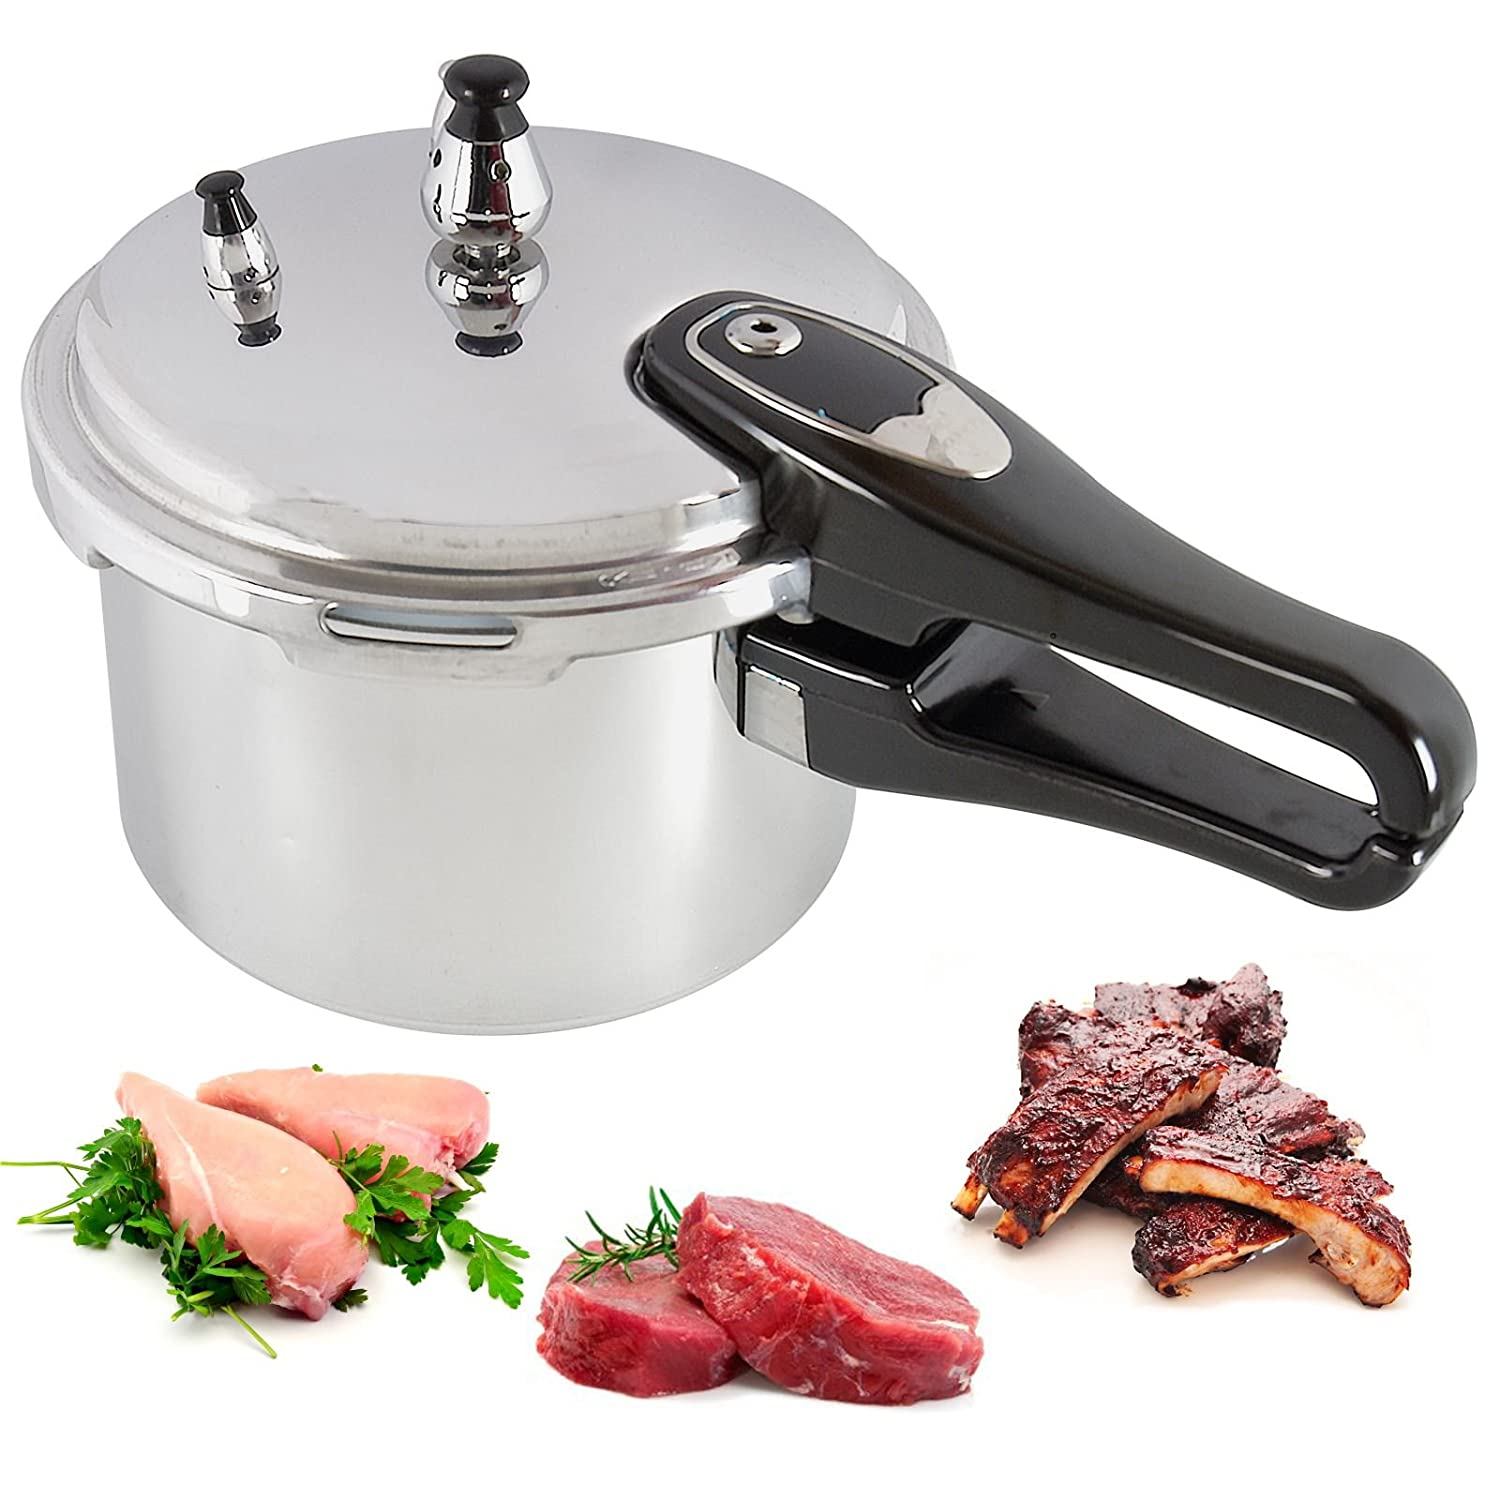 3l Litre Cooking Pressure Cooker Lightweight Durable Aluminium Kitchen Home Cookware Catering Heat Resistant Handles ASAB